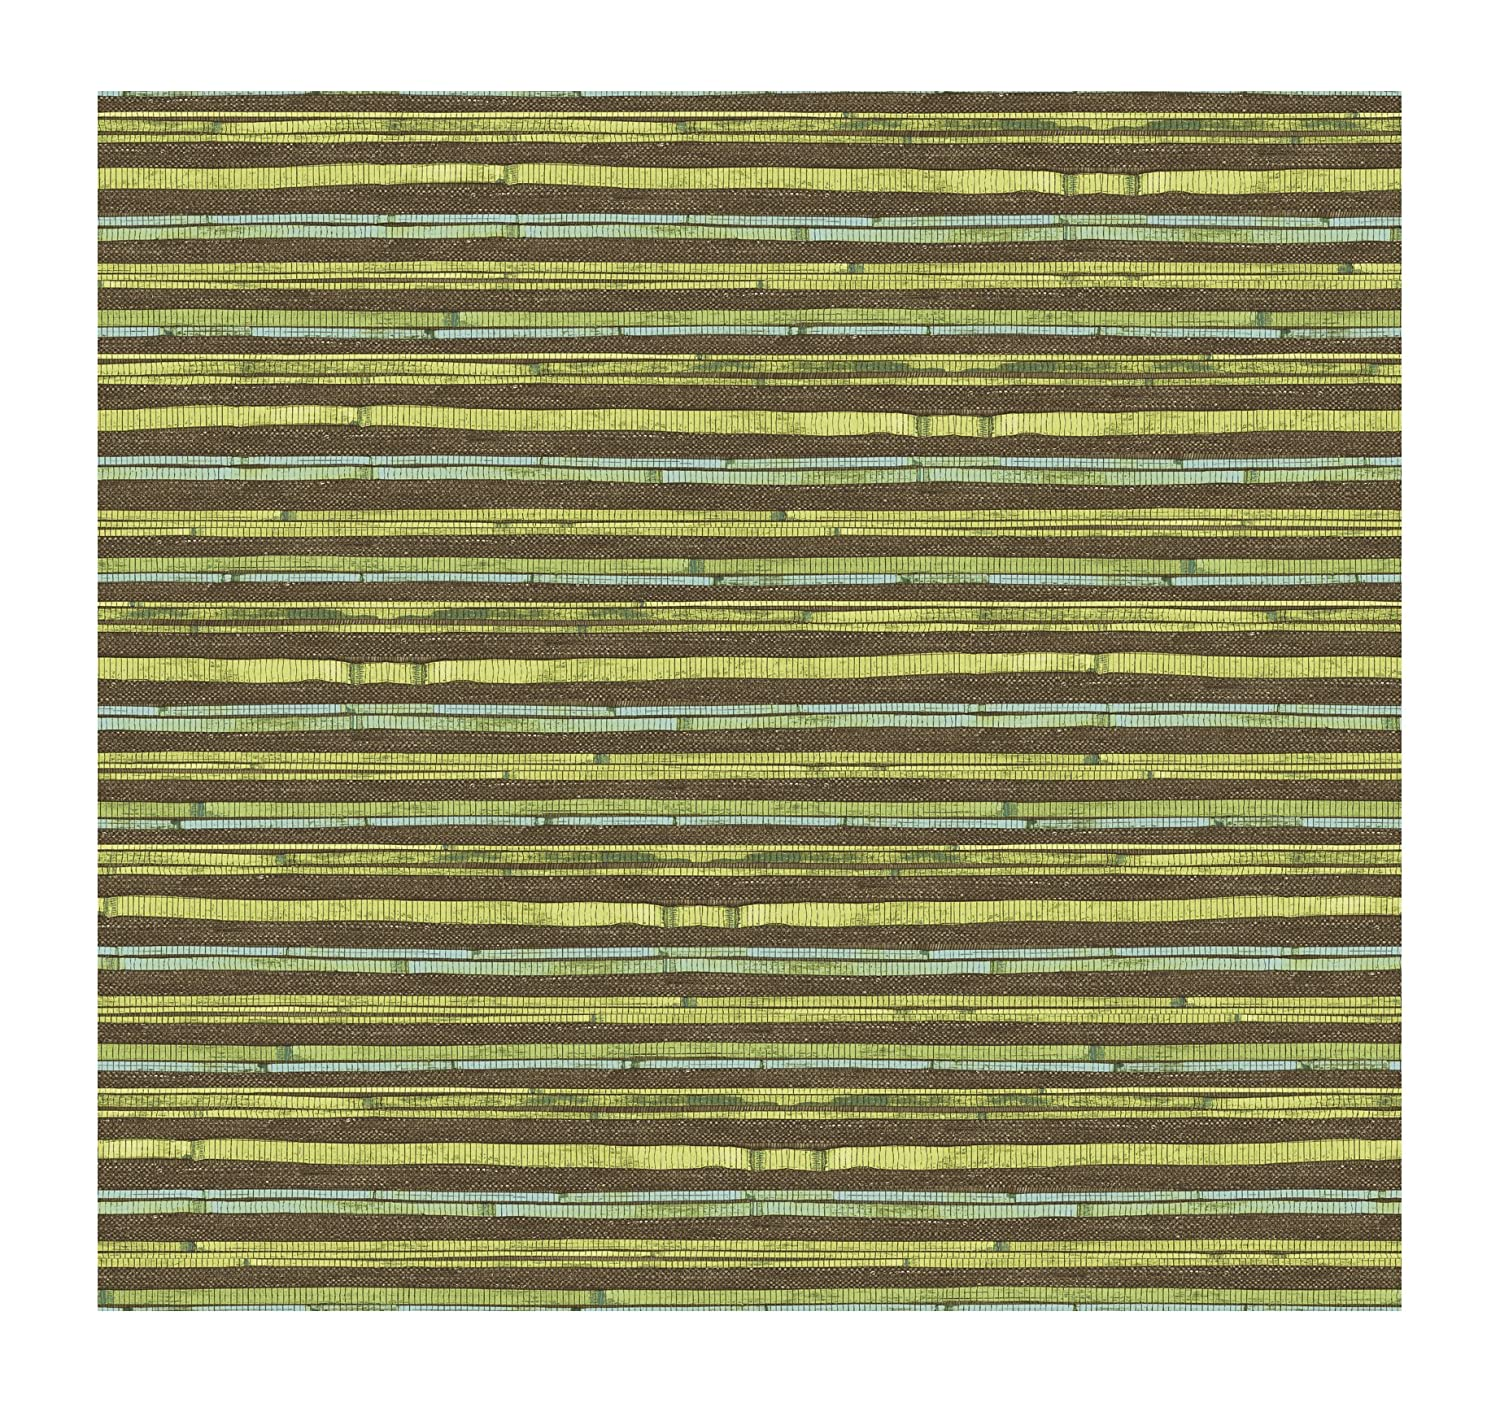 Green//Blue//Brown York Wallcoverings AC6097SMP by The Sea Woven Bamboo 8 X 10 Wallpaper Memo Sample